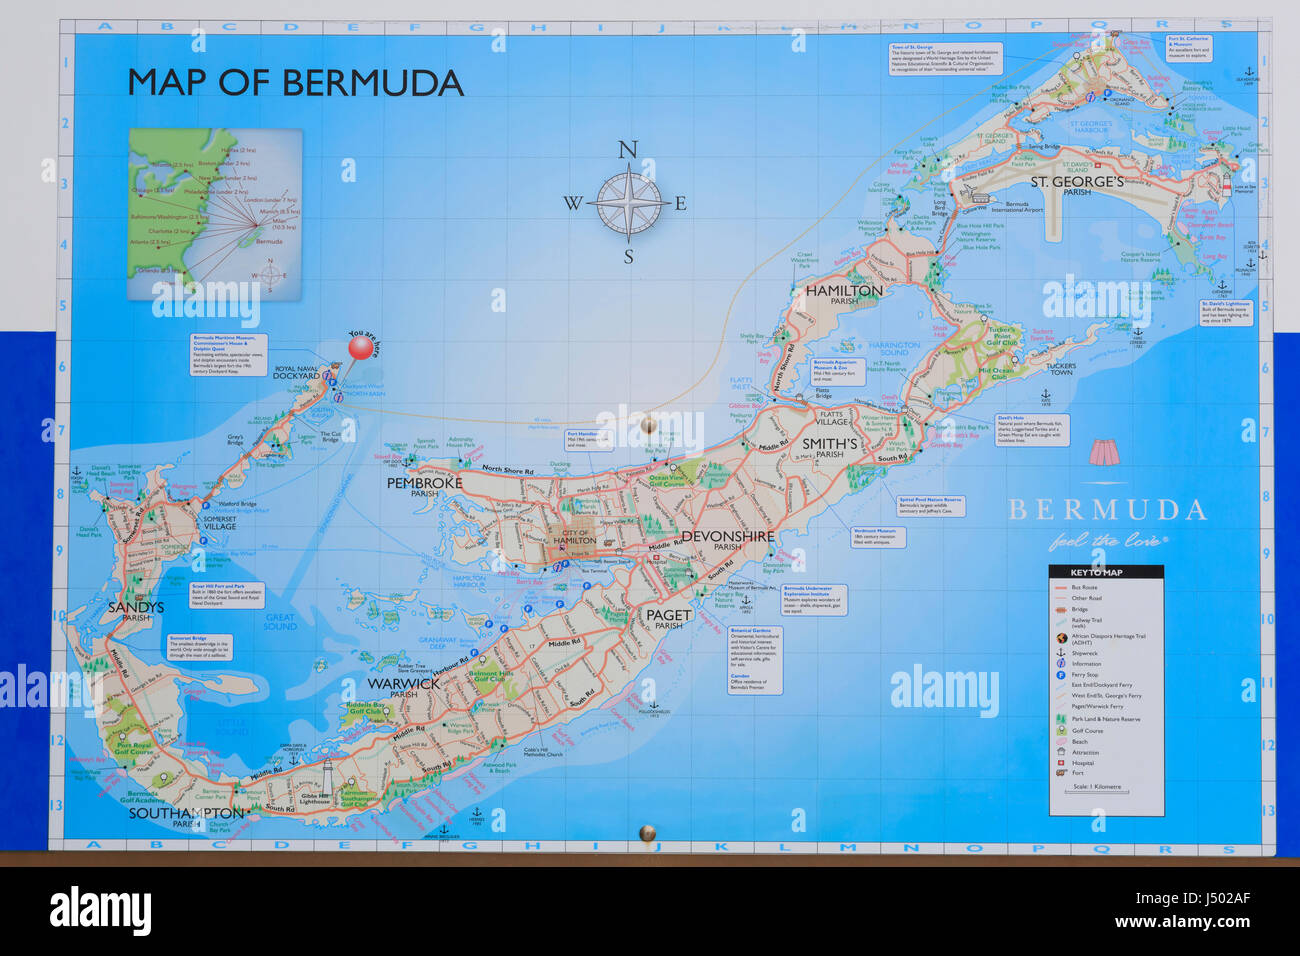 Map Bermuda Stock Photos & Map Bermuda Stock Images - Alamy